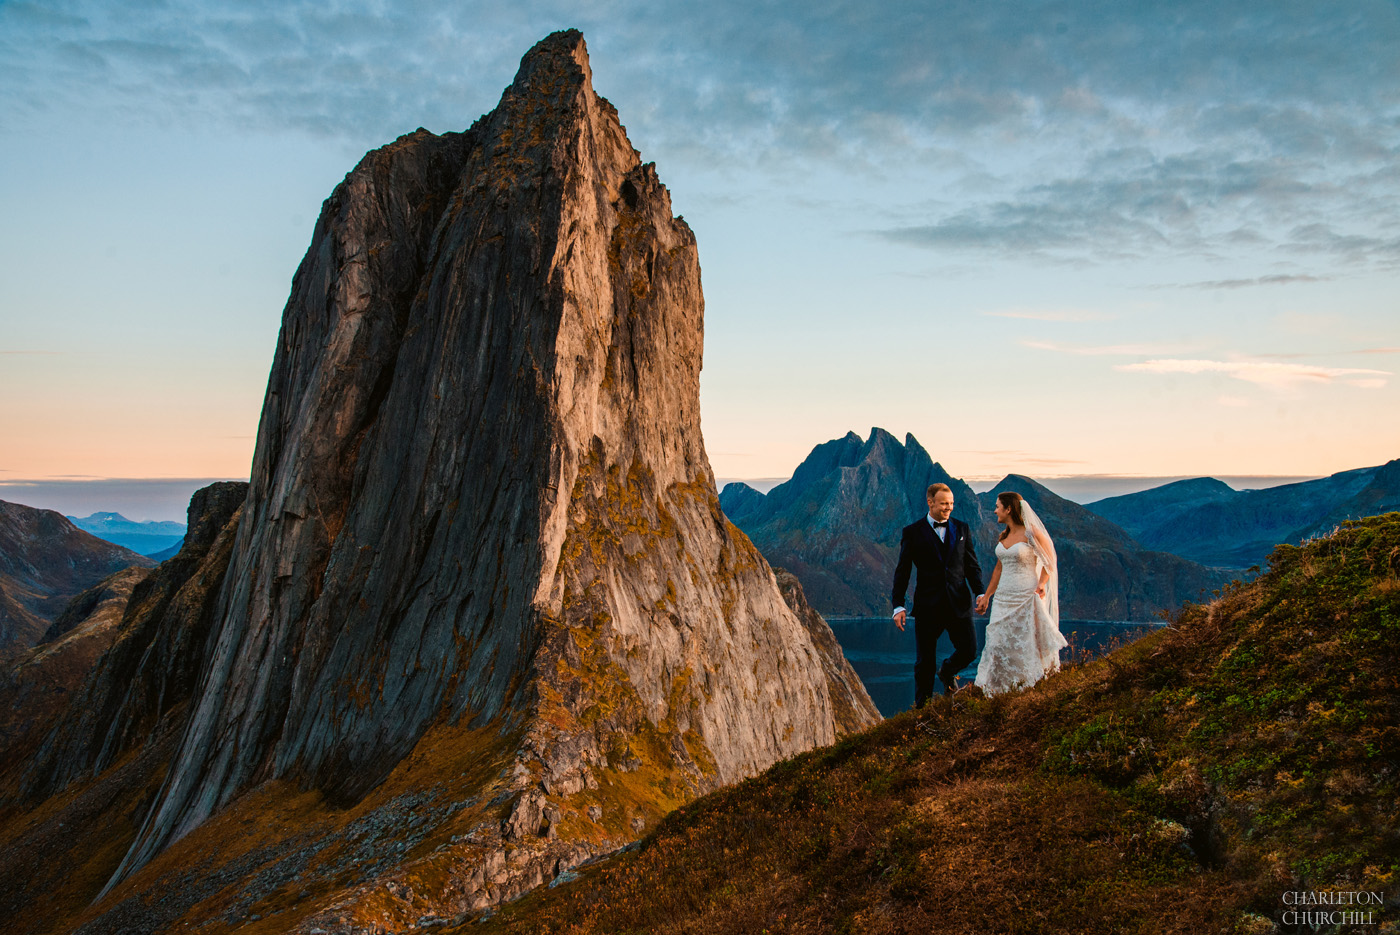 epic wedding photos in the mountains with adventure wedding couple of Norway destination